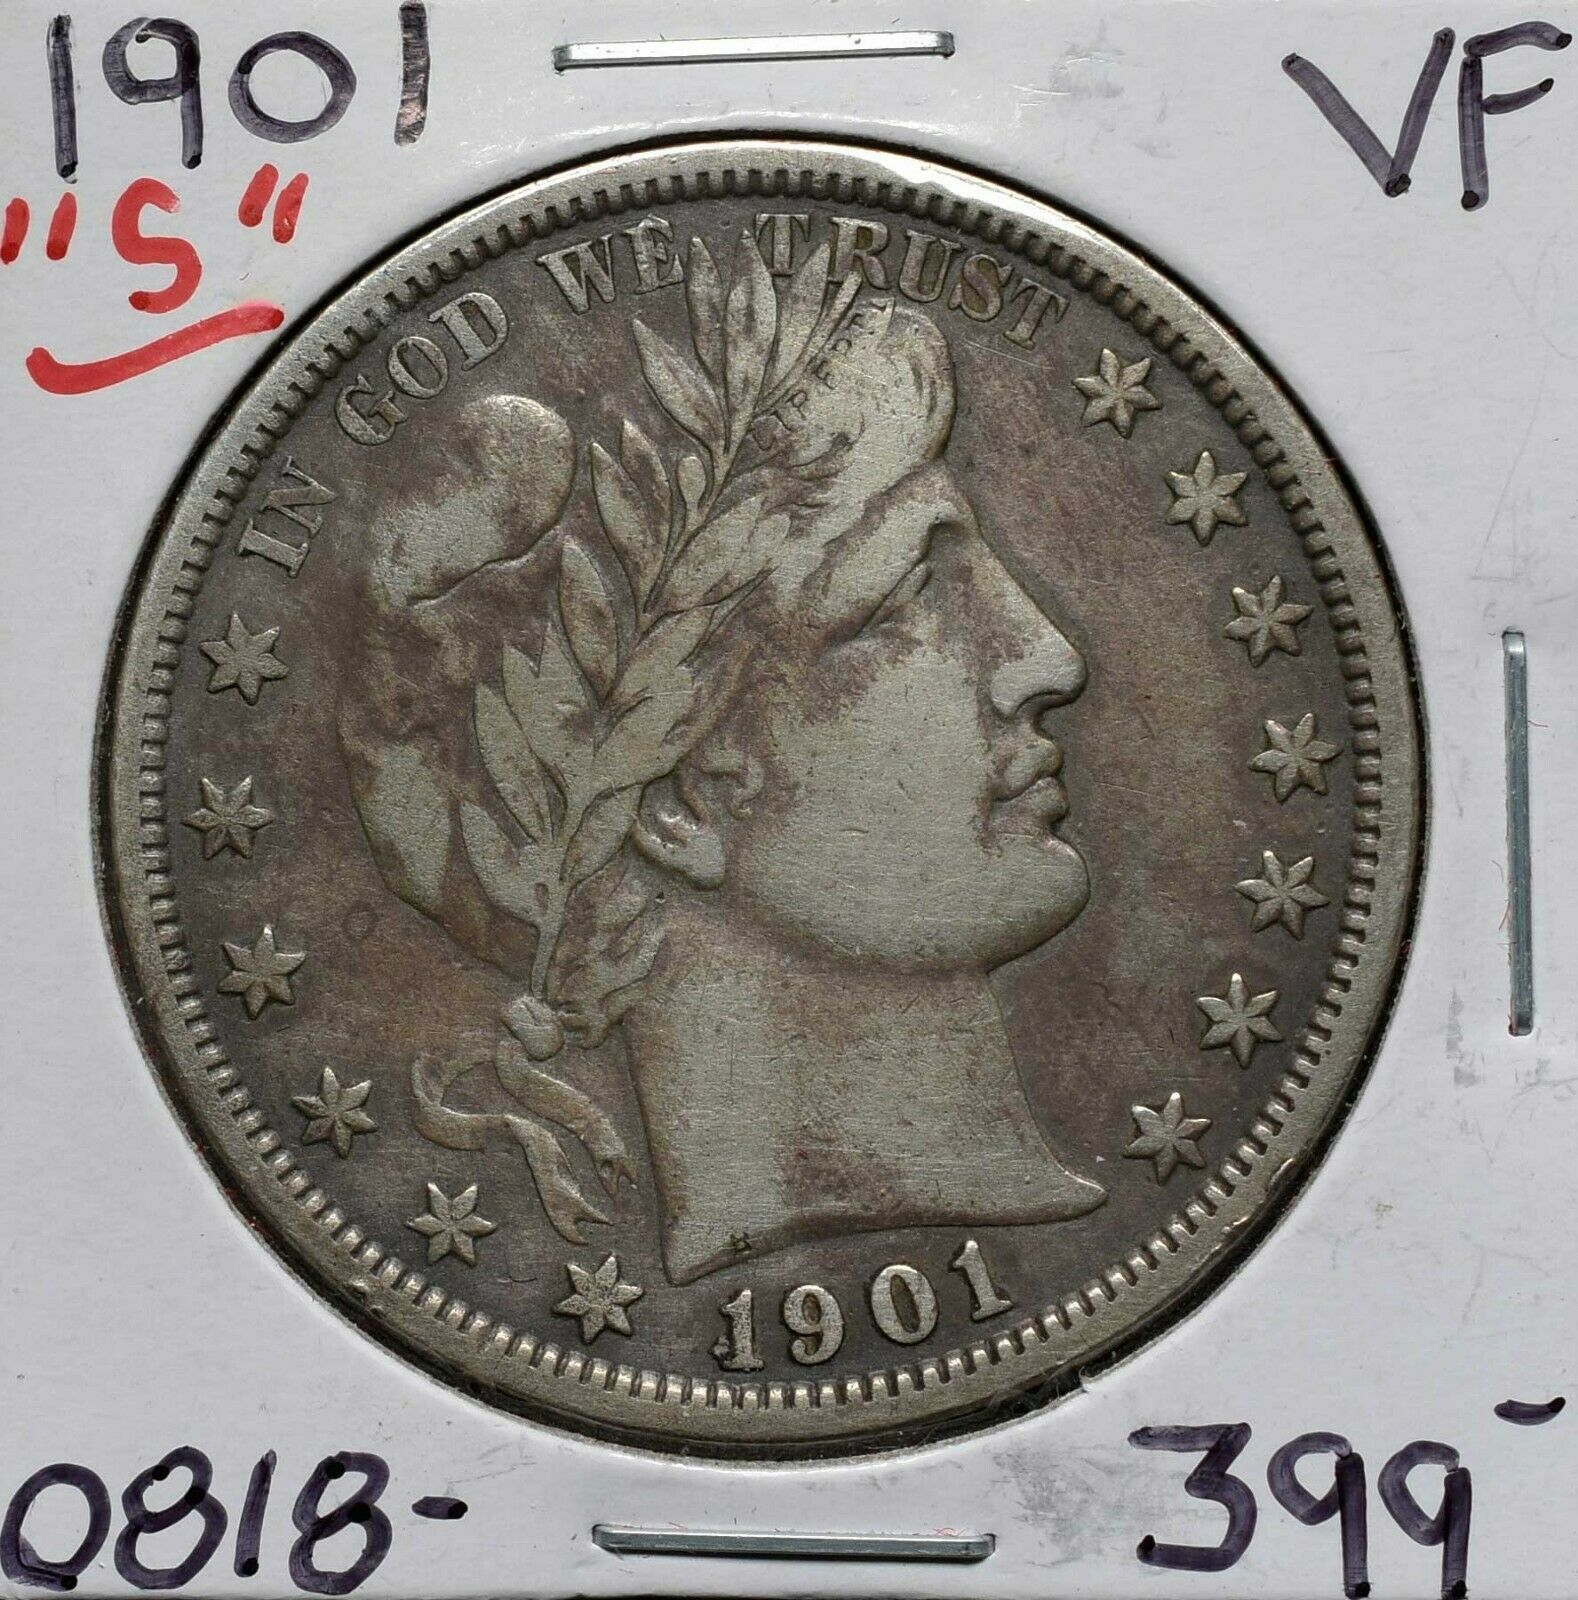 1901S Silver Barber Half Dollar 50¢ Coin Lot# A 613